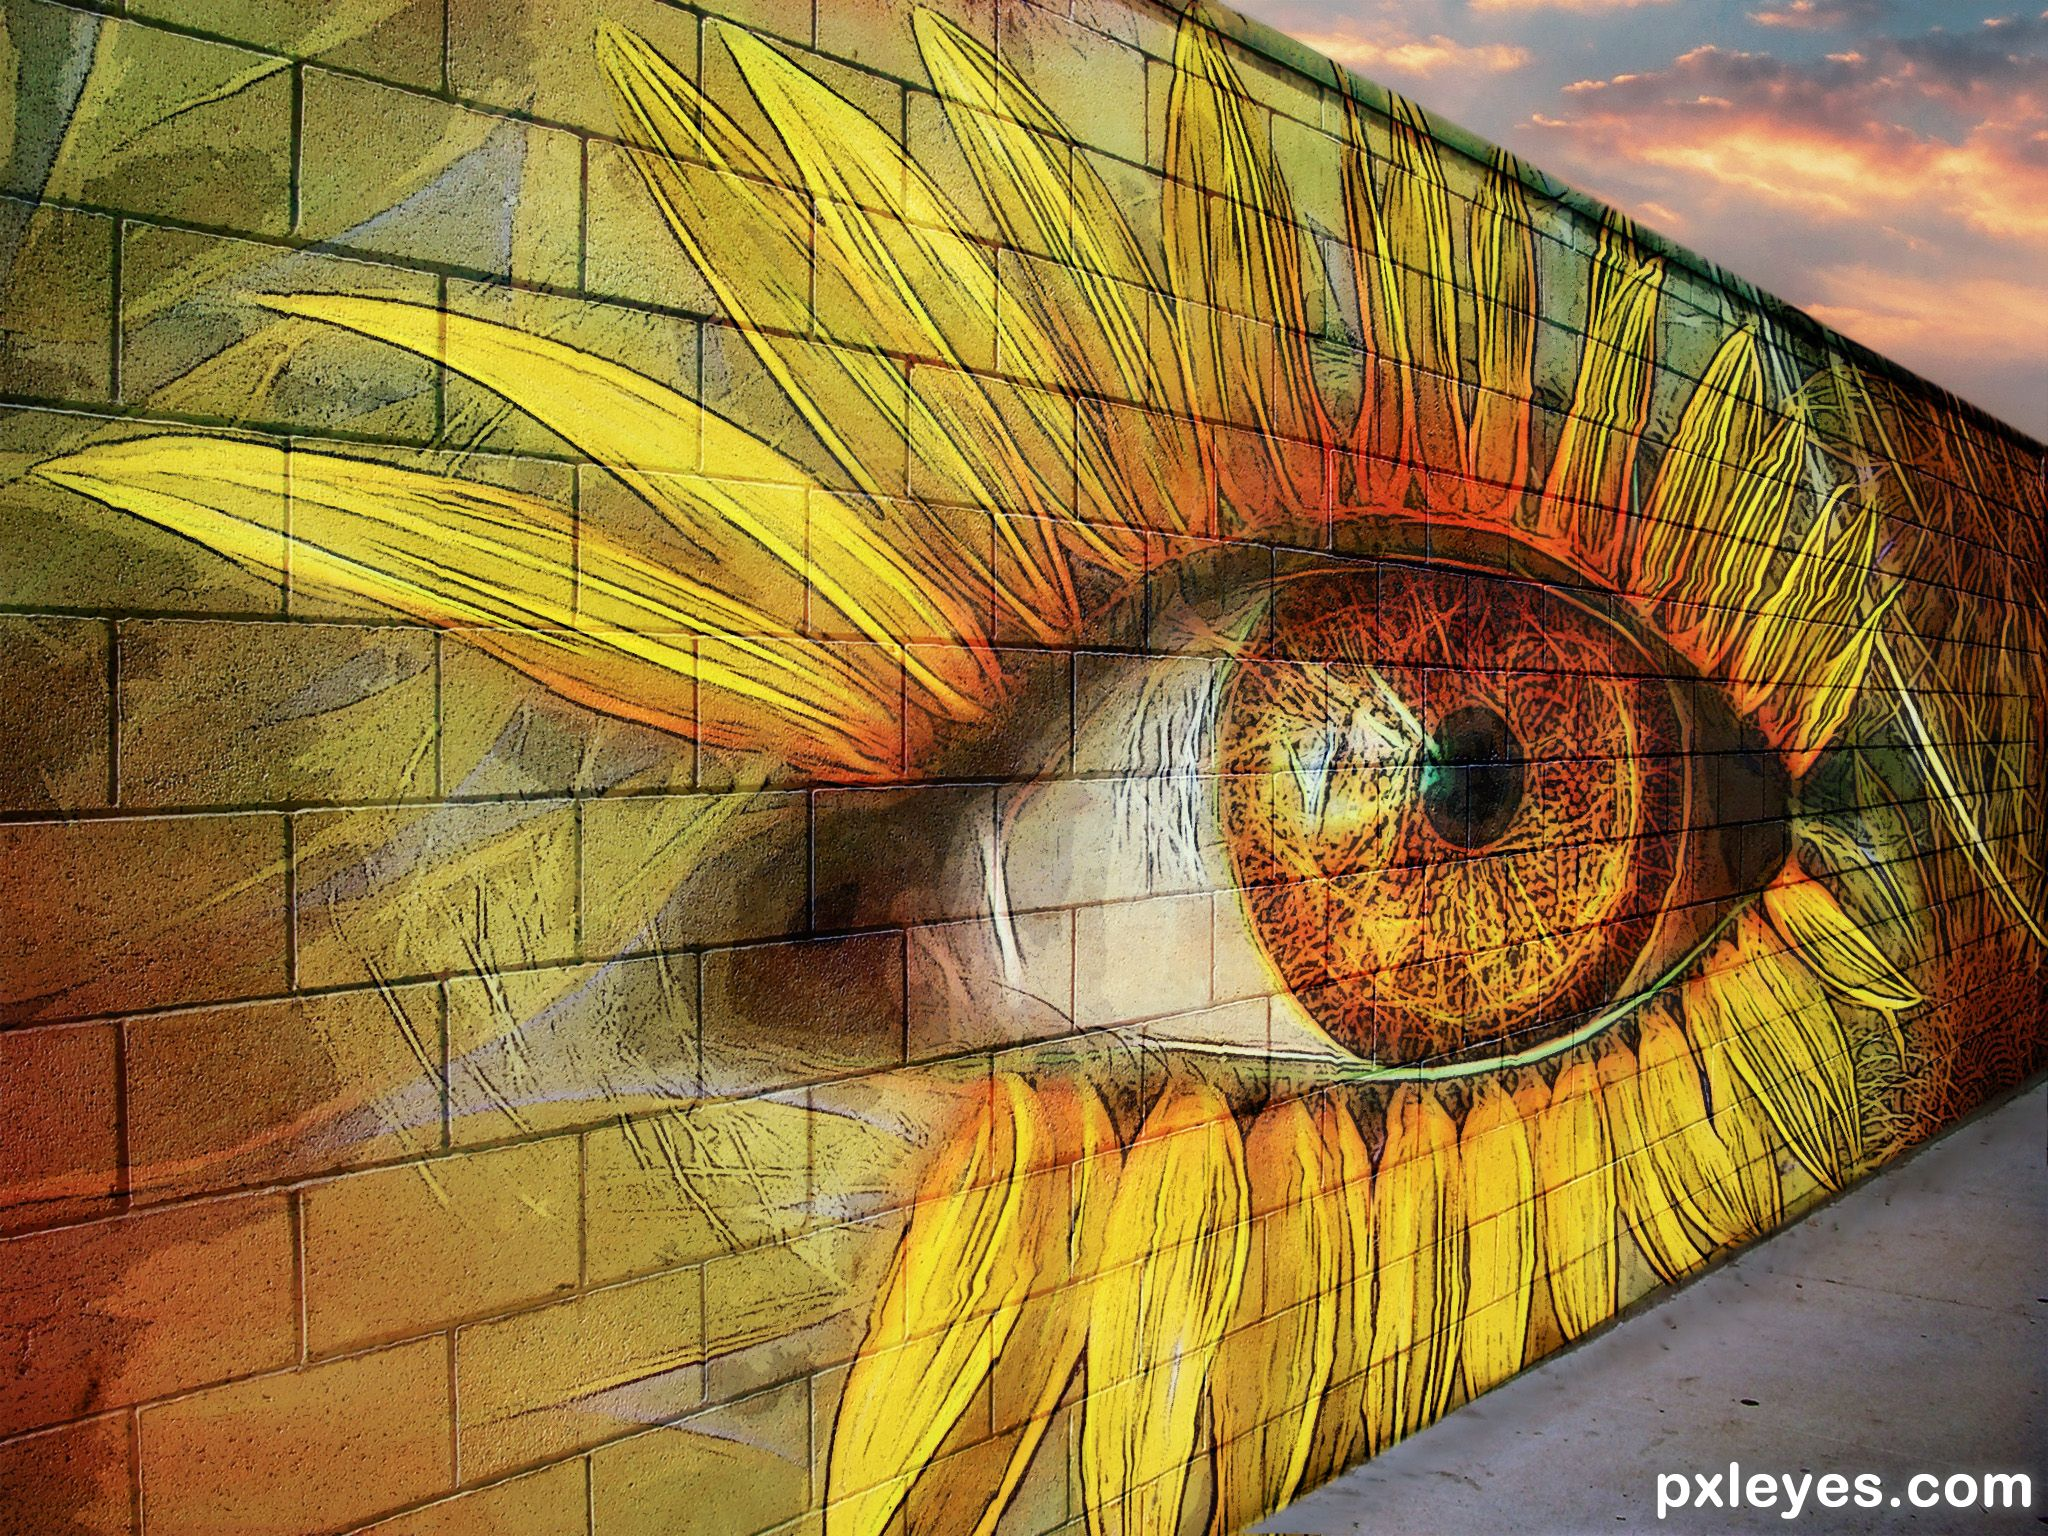 Graffiti Wall picture, by skyangel for: single eye photoshop contest ...